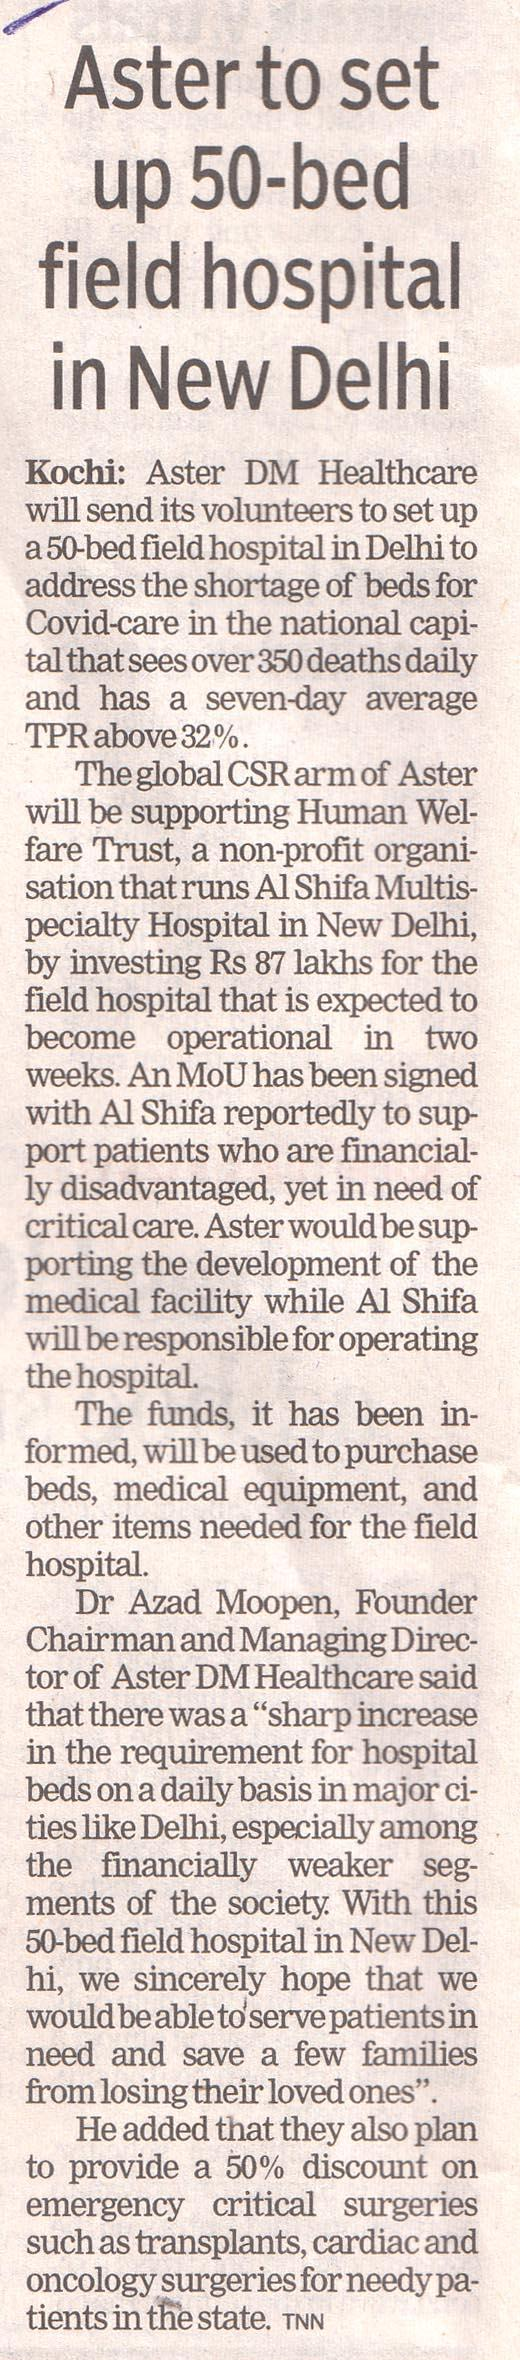 30 04 2021 The Times Of India Pg 02